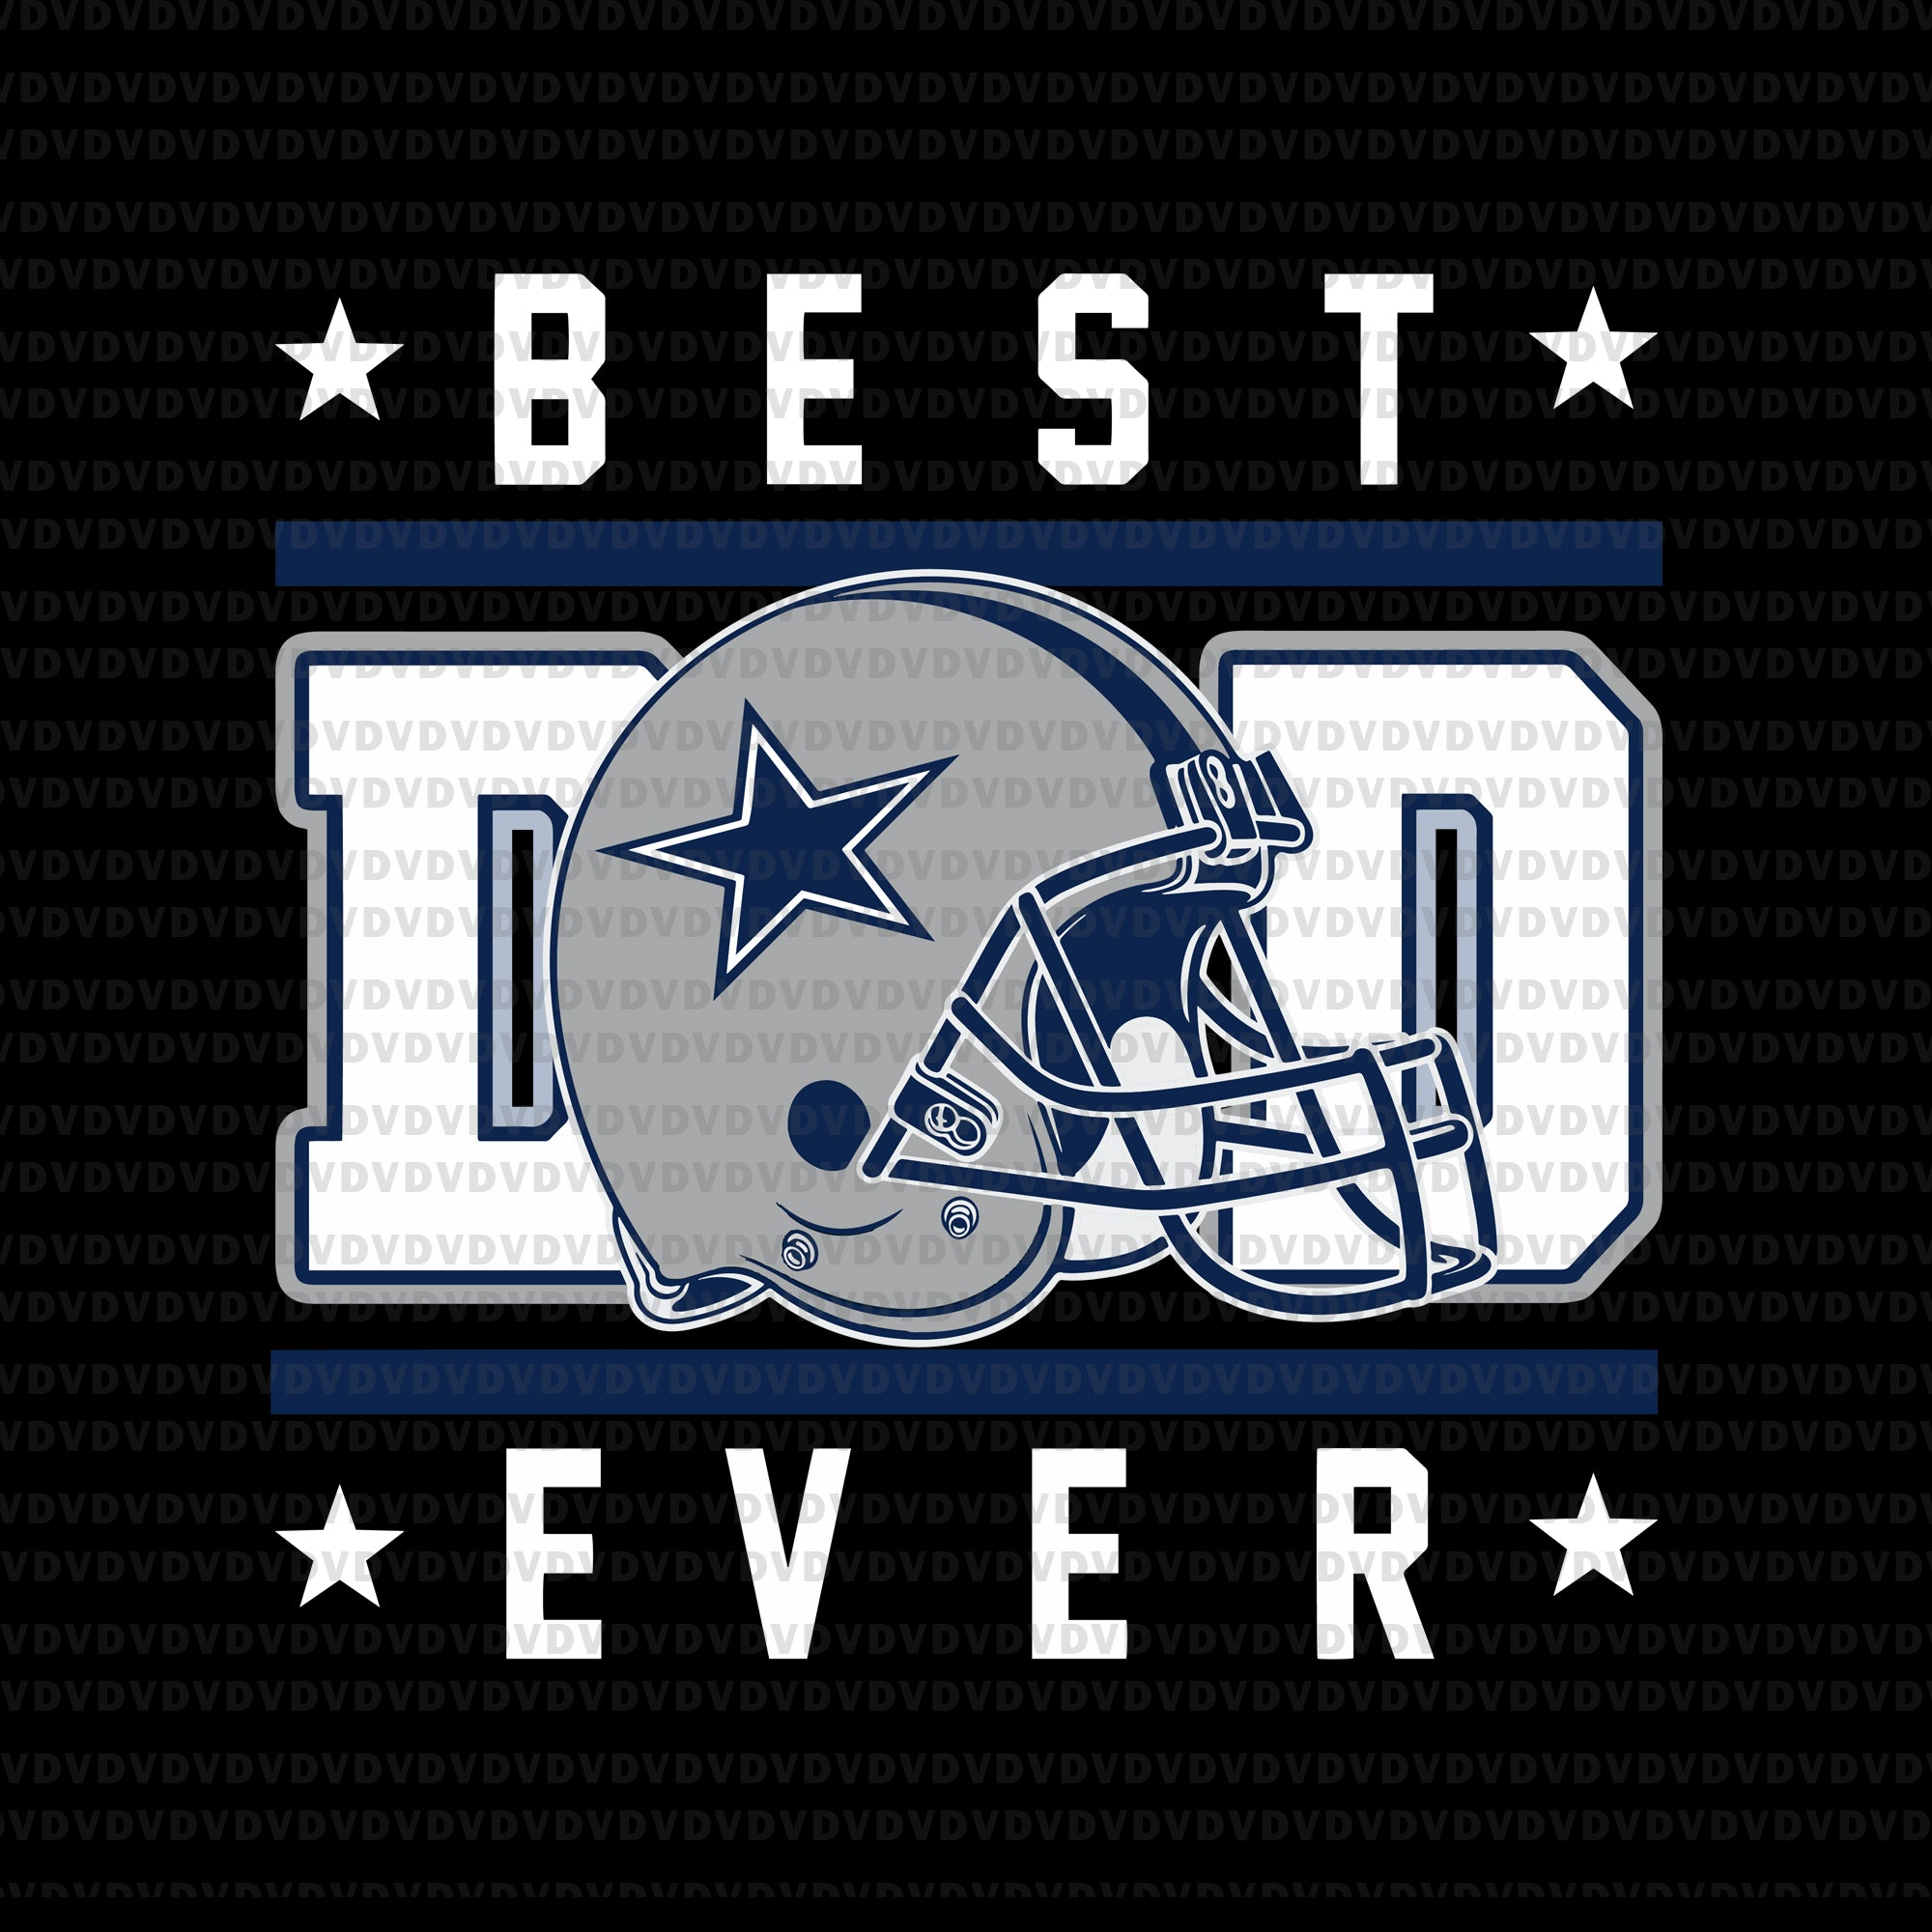 Best dad ever svg,best dad ever ,best dad ever cowboy svg,best dad ever cowboy,best dad ever cowboy png, best dad ever, father's day svg, png,eps,dxf